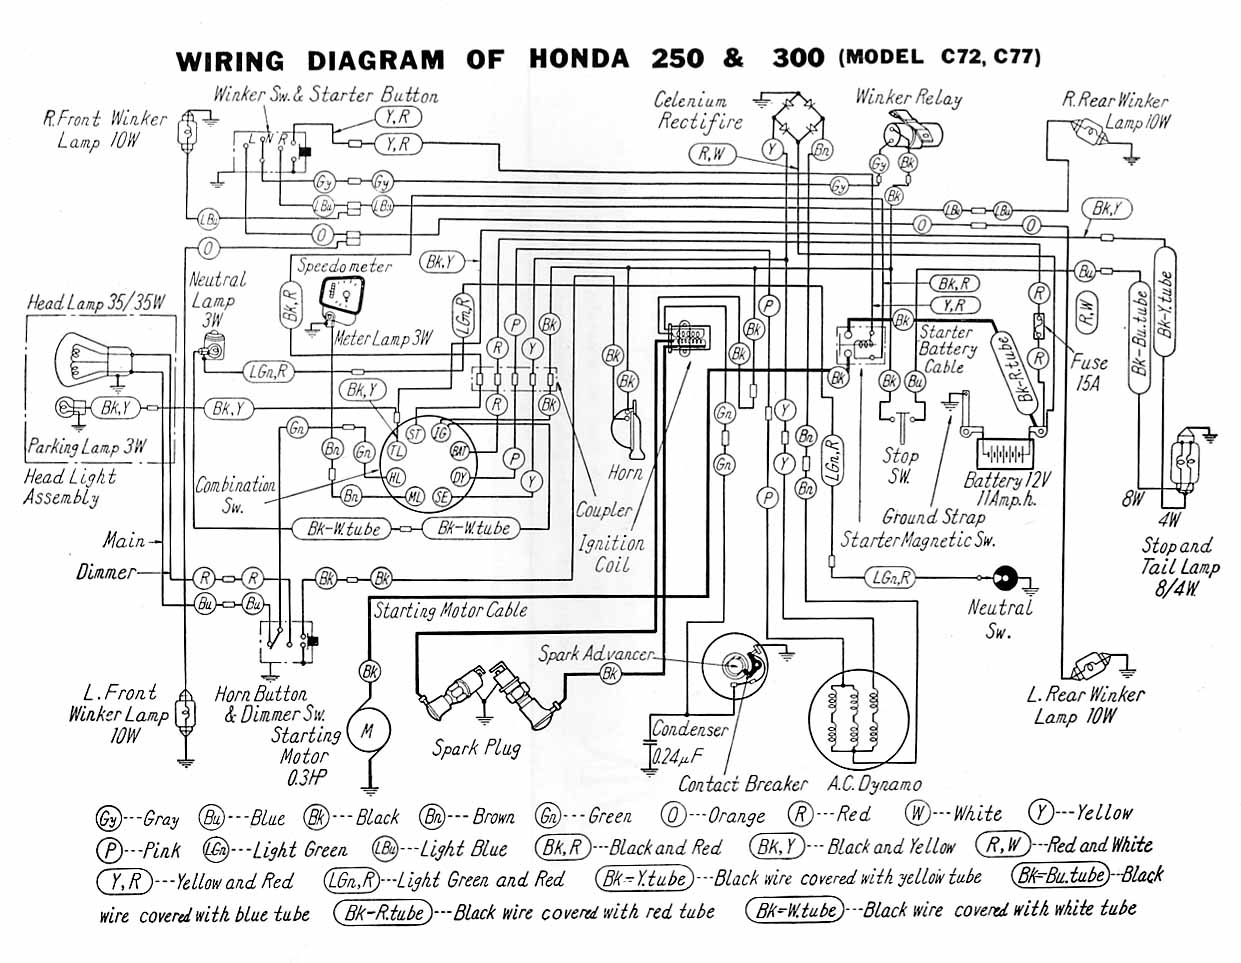 Ca77 1967 Wiring Diagram Electricity Basics 101 Honda Cl77 Index Of Mc Wiringdiagrams Rh Oldmanhonda Com Parts